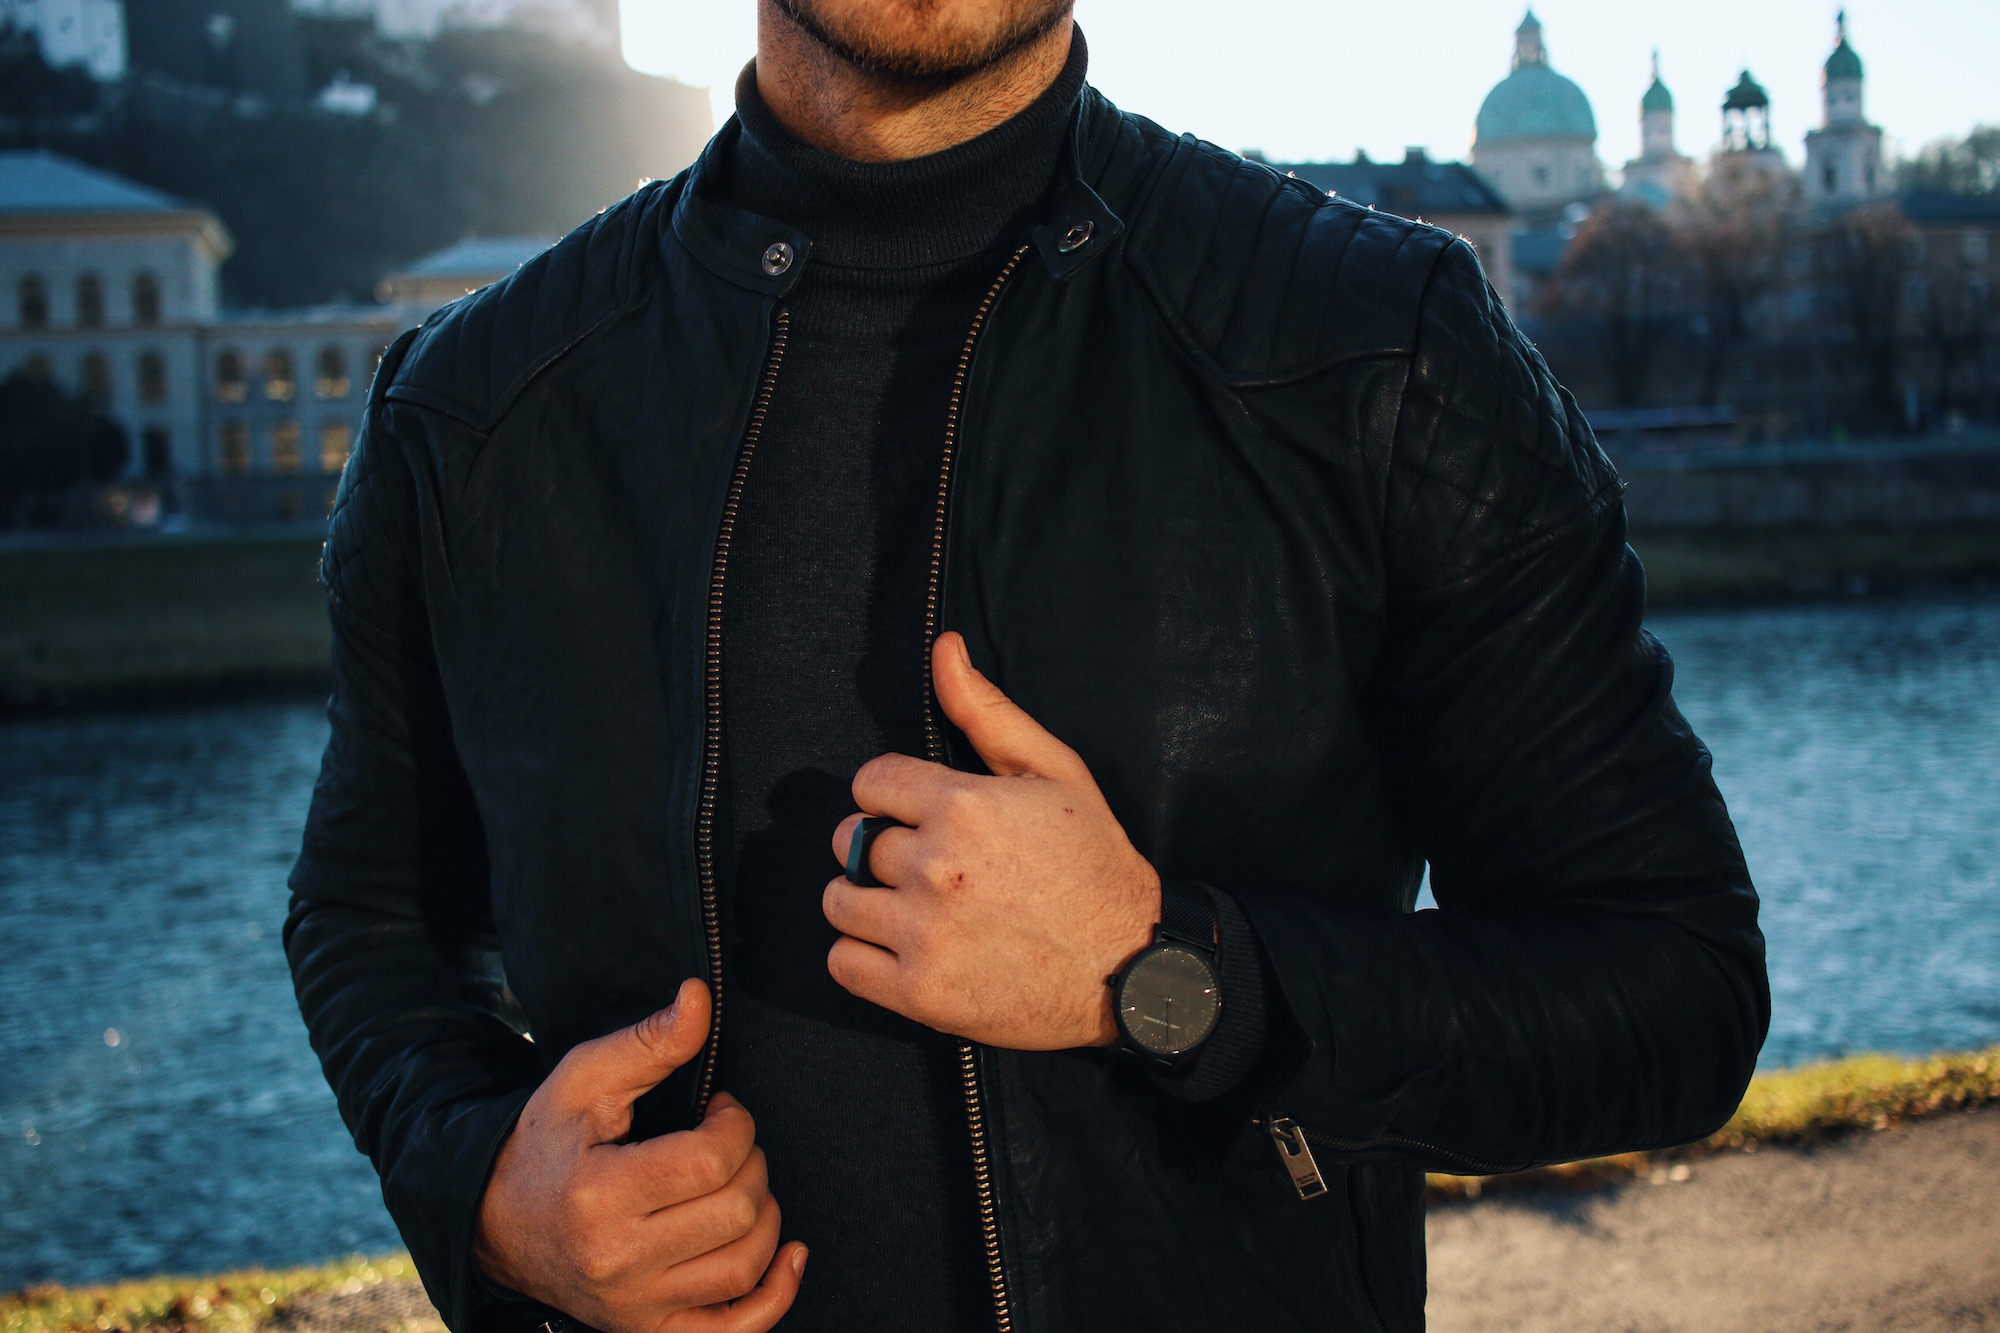 All Black Look by Selected Homme Lederjacke Rollkragenpullover und Chelsea Boots _ Meanwhile in Awesometown _ Wiener Blogger _ Maleblogger _ Mens Fashion Blogger8